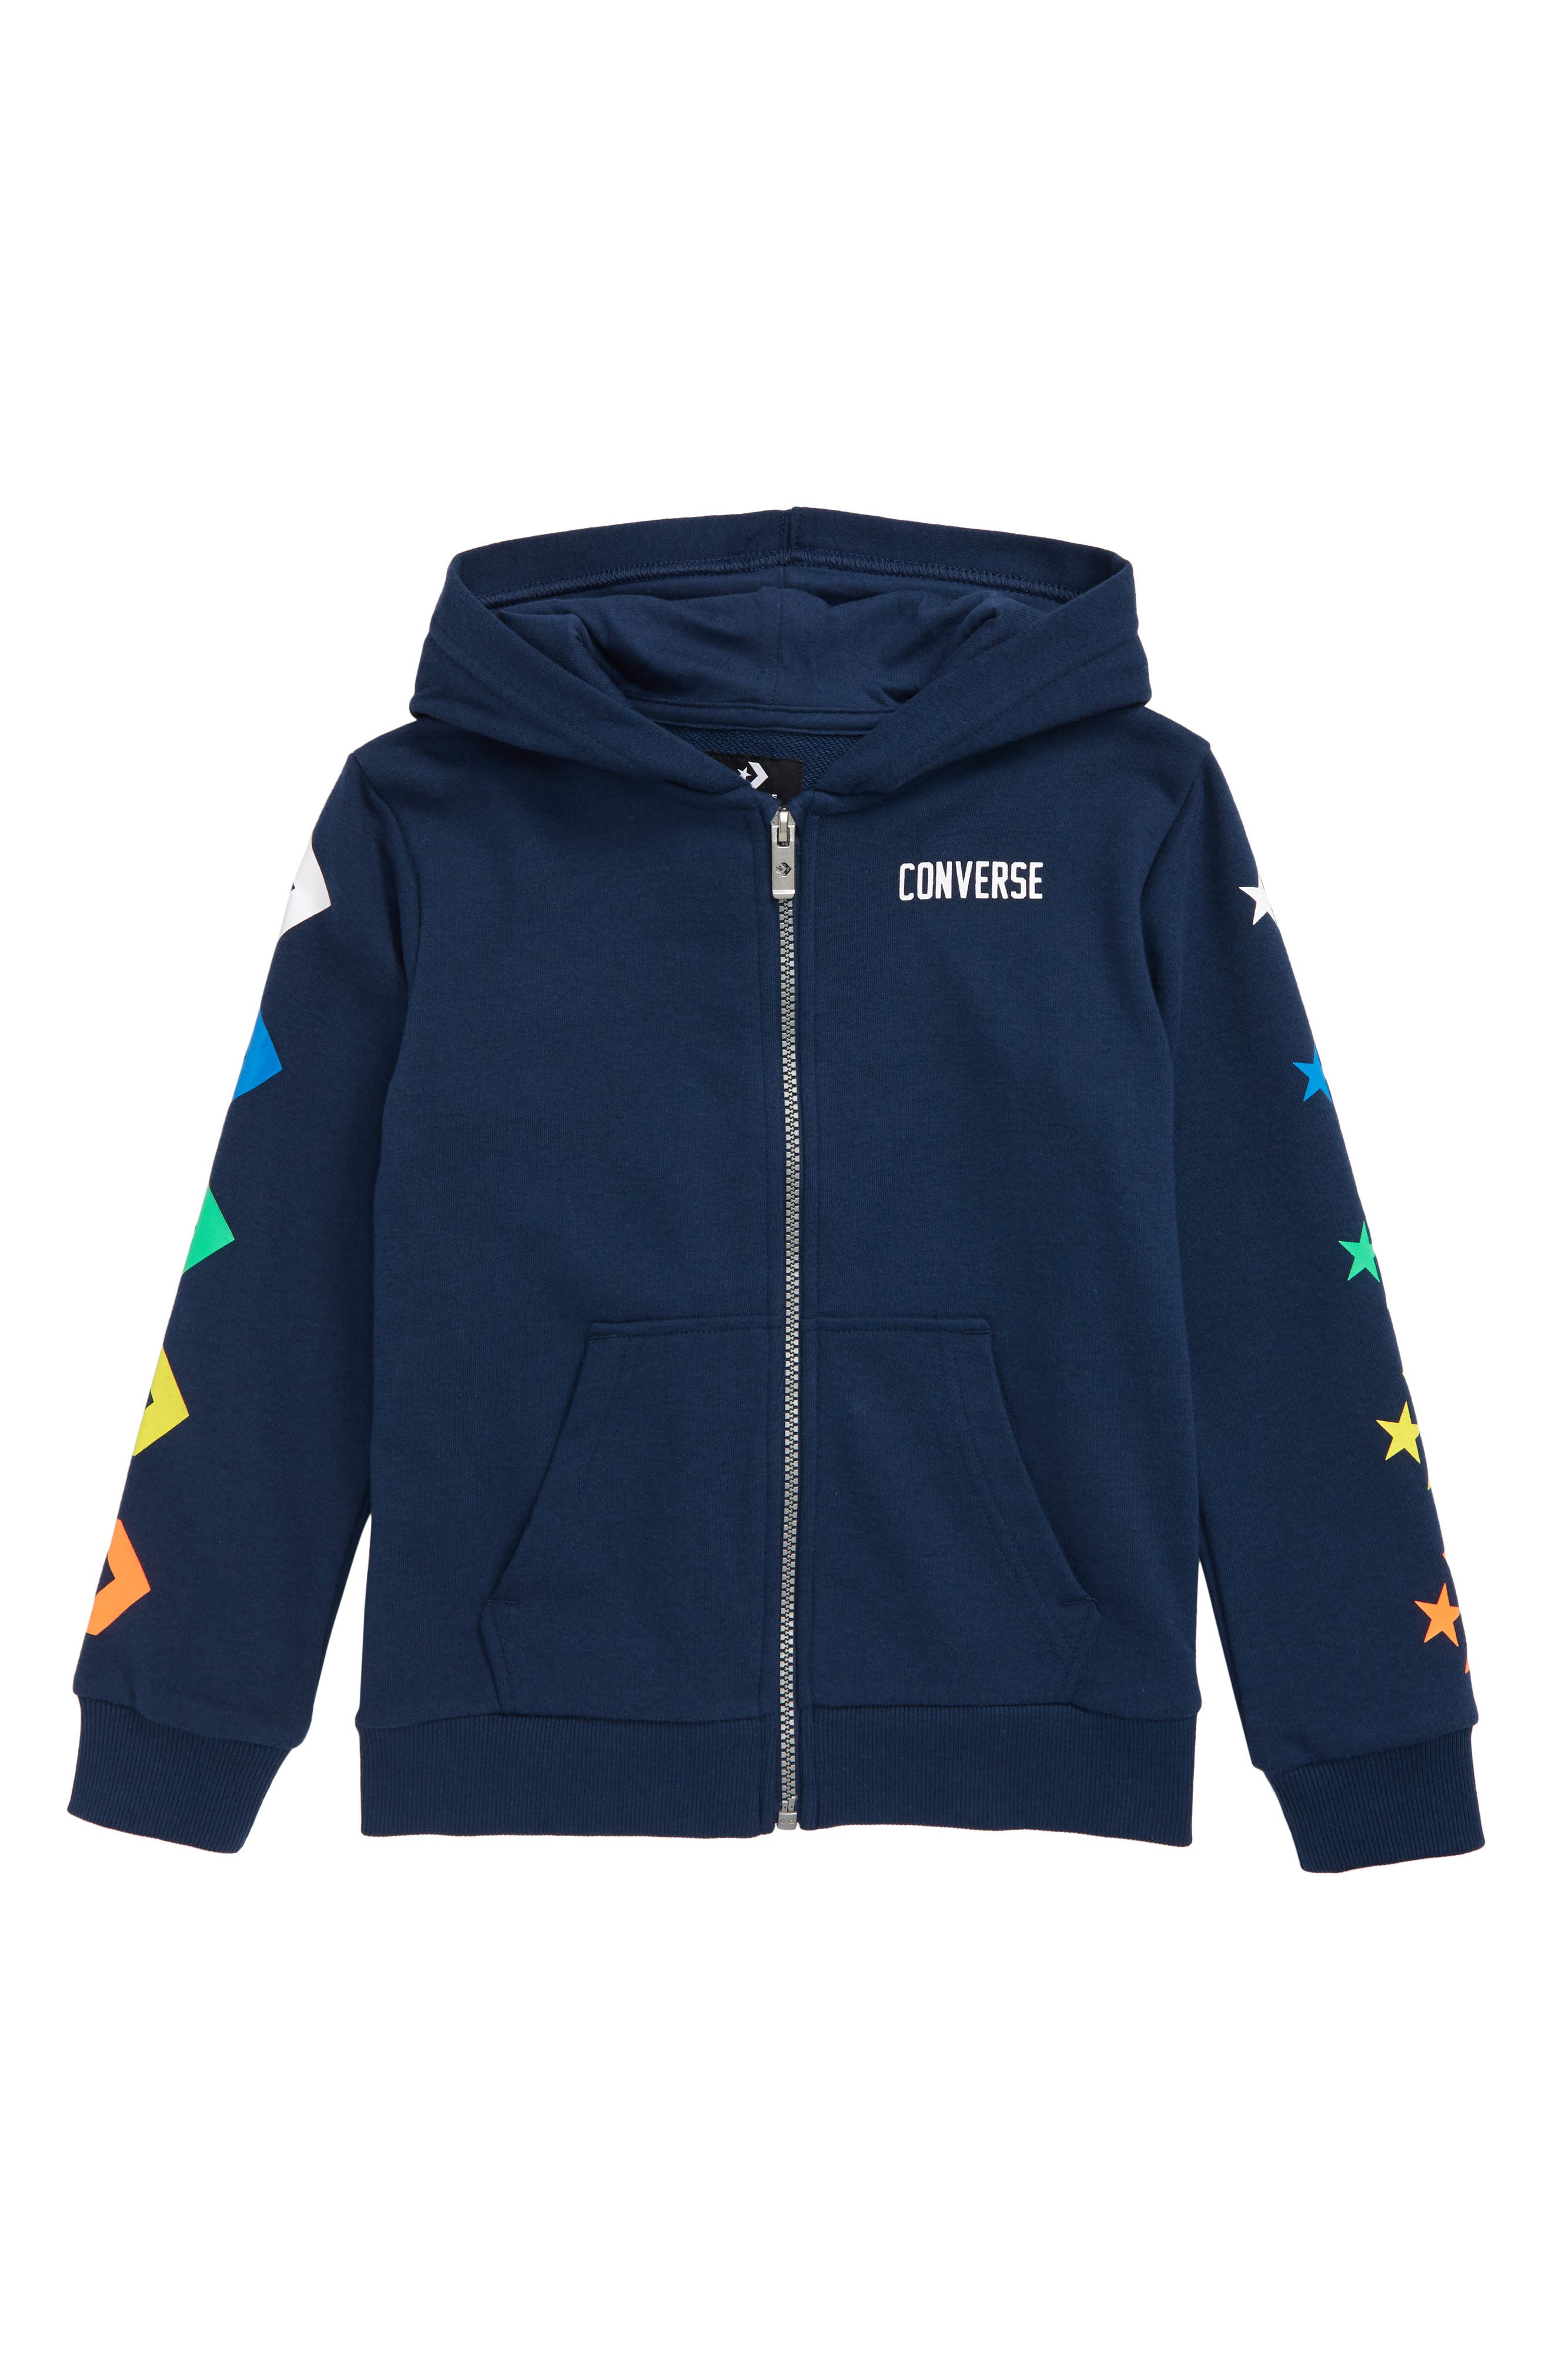 Boys Converse Star Chevron Graphic Zip Hoodie Size L (1213y)  Blue